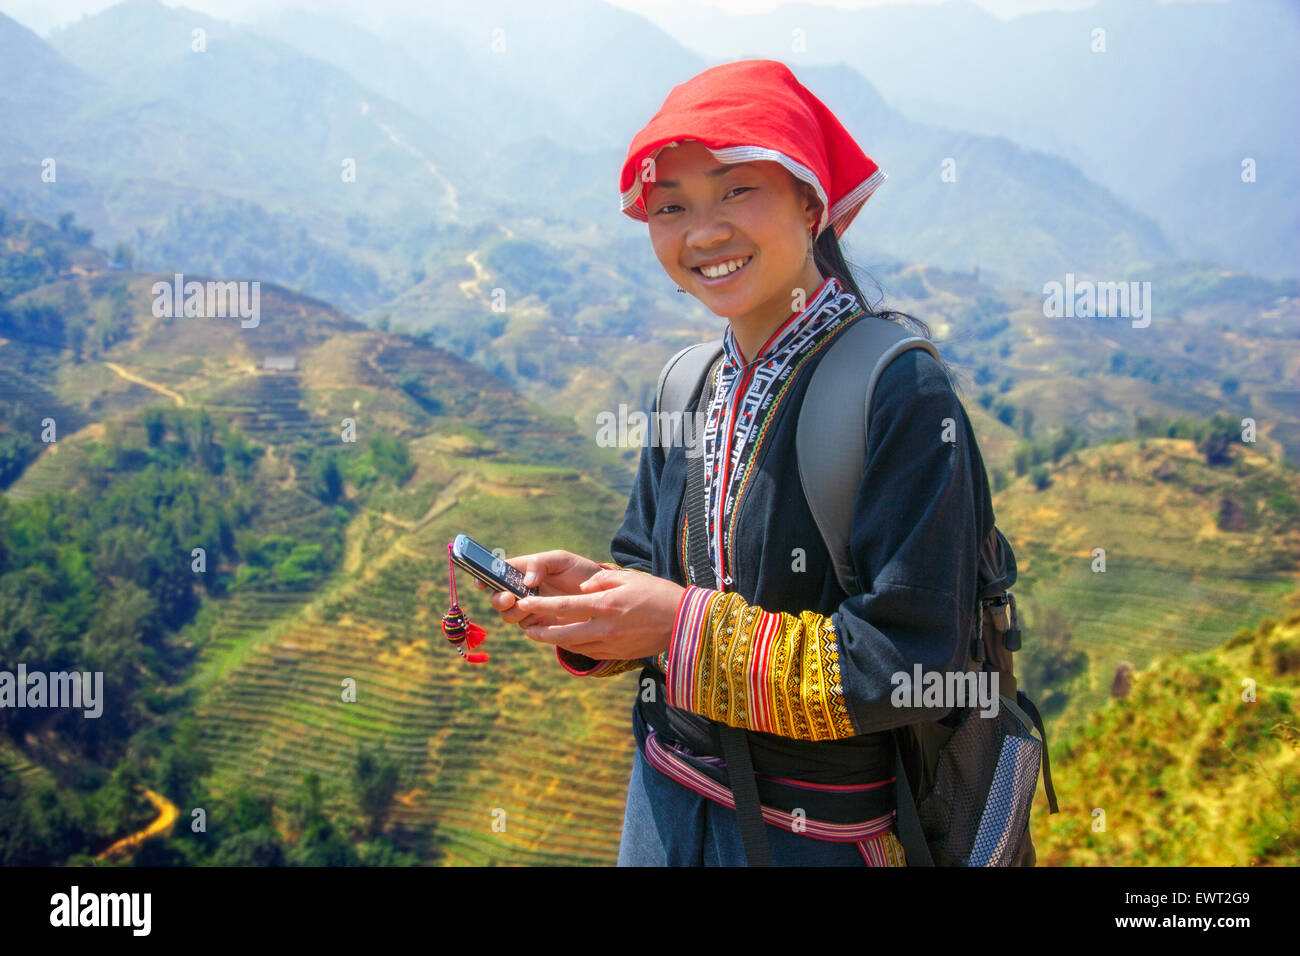 Stock Photo - Hmong girl tour guide on her cell phone in Sapa, Vietnam above rice paddy